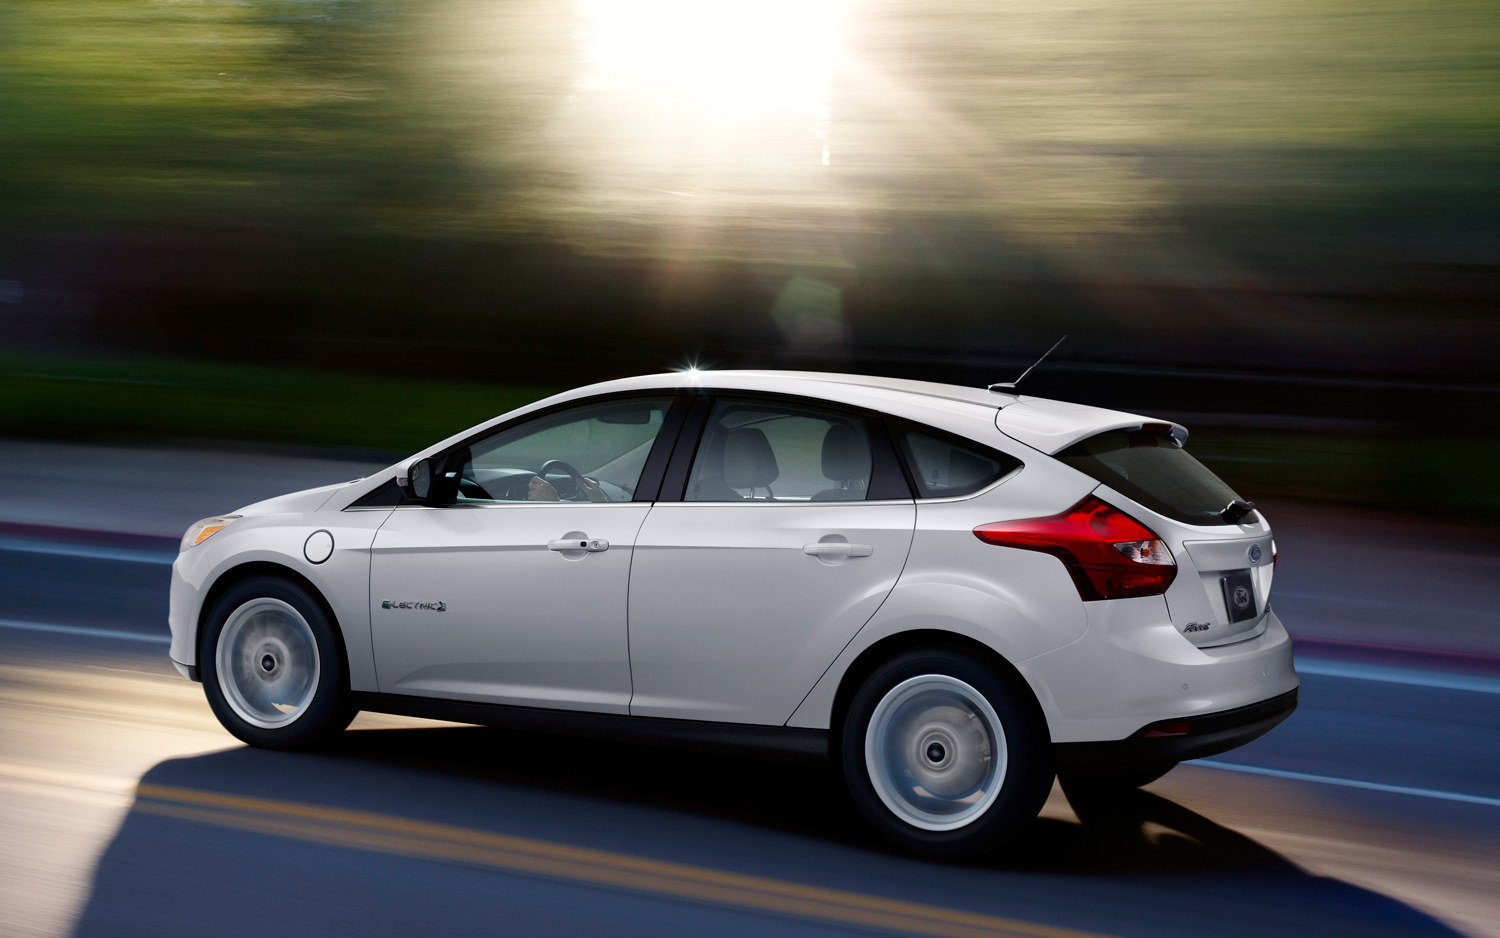 Brighton Ford : Ford Vehicles Make Kelley Blue Book's 10 ...